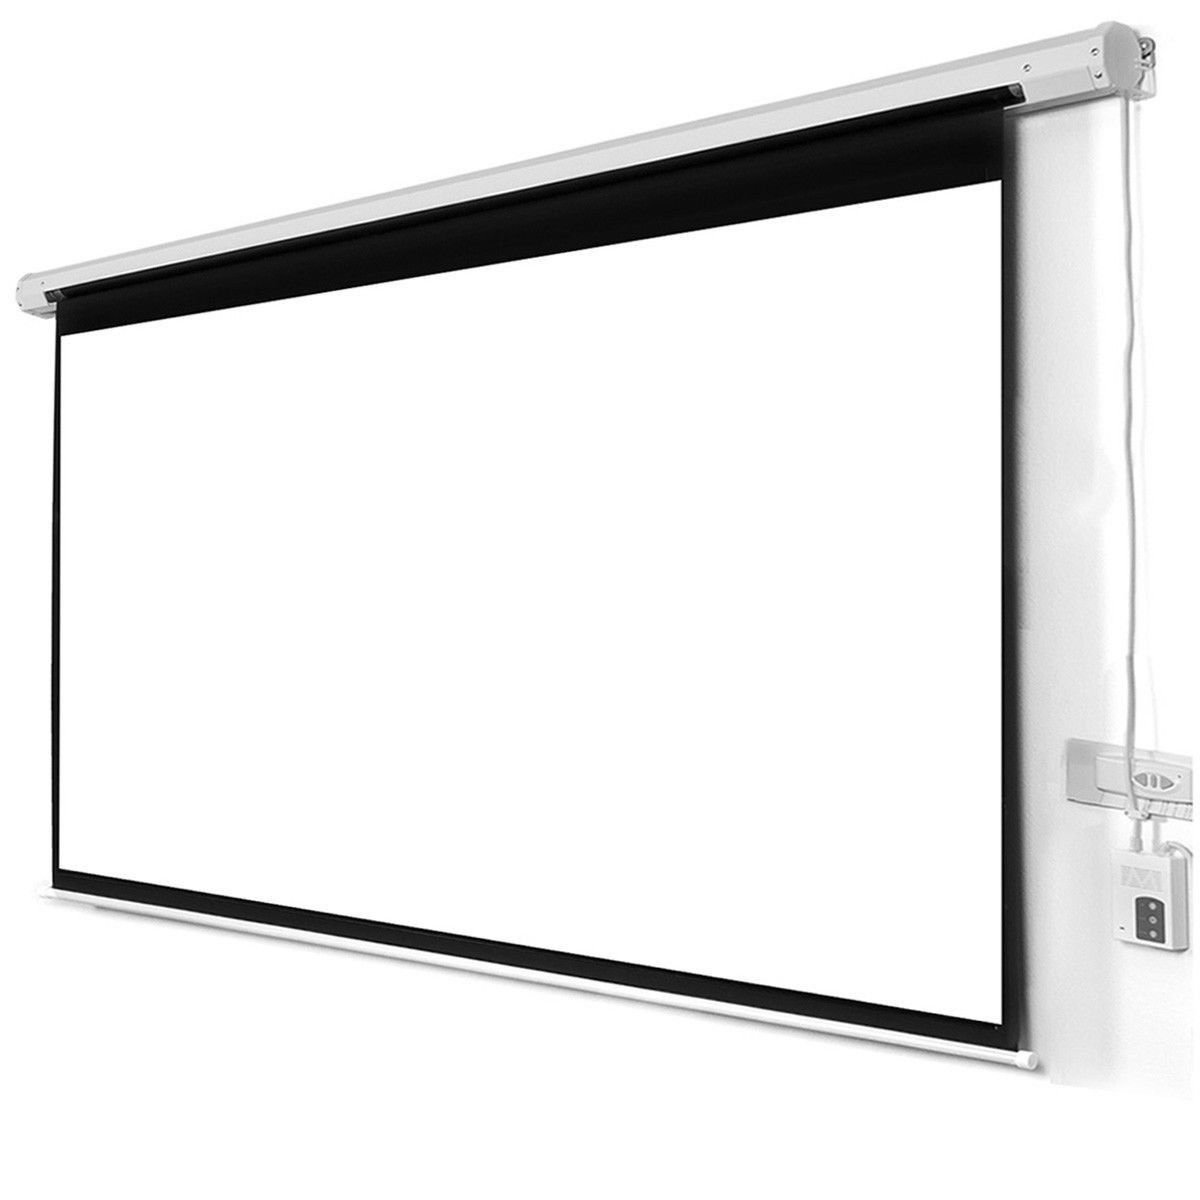 Safstar Electric Motorized Auto Projector Projection Screen With Remote Control 16:9 Square 105'' X 59'' View 120'' Diagonal